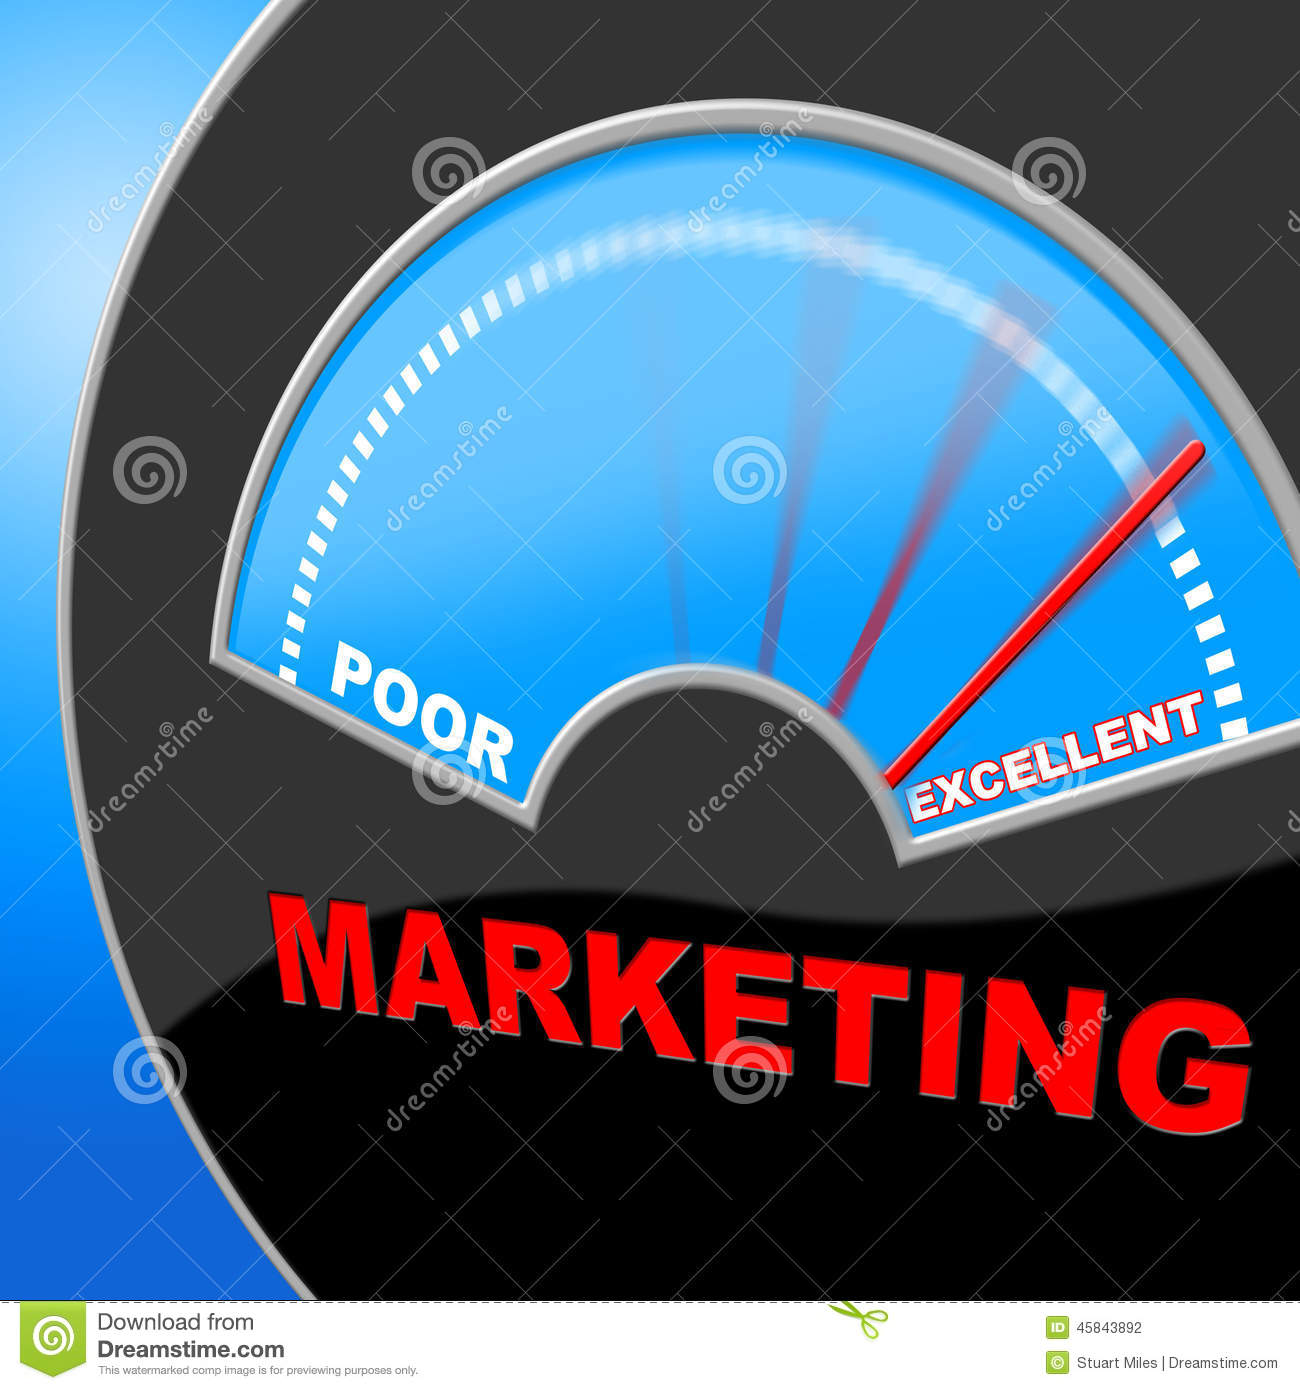 excellent marketing represents selling excelling and perfect stock excellent marketing represents selling excelling and perfect